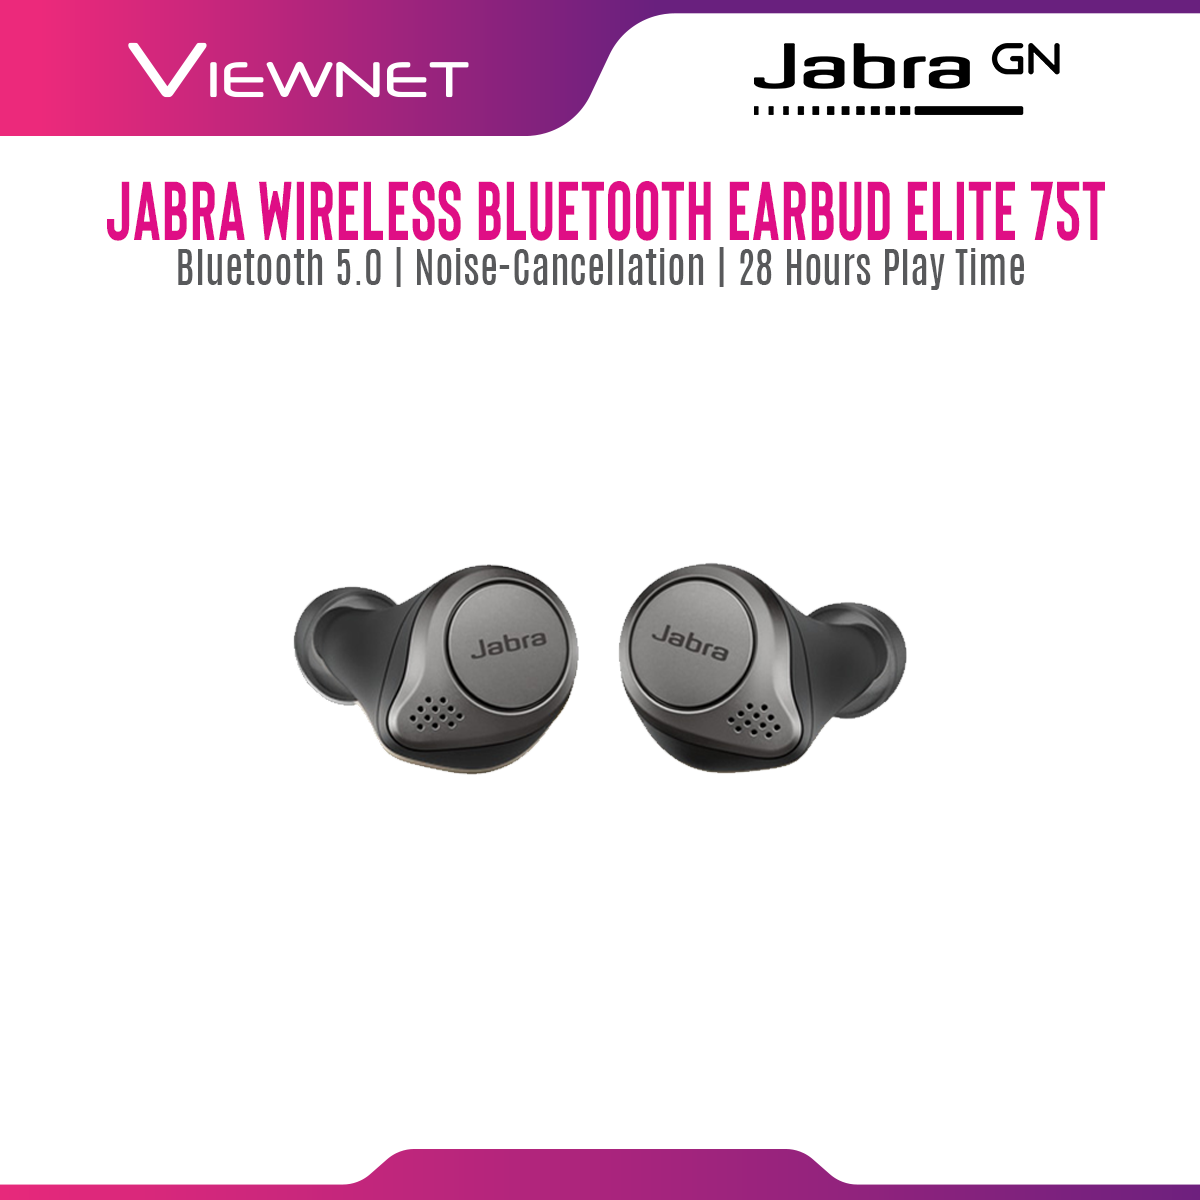 Jabra Wireless Bluetooth Earbud Elite 75t with Charging Case, Bluetooth 5.0, 4 Microphone Call Technology,Noise-Cancellation, IP55 Dust Resistant, Up To 28 Hours Play Time,Support Google/Alex/Siri